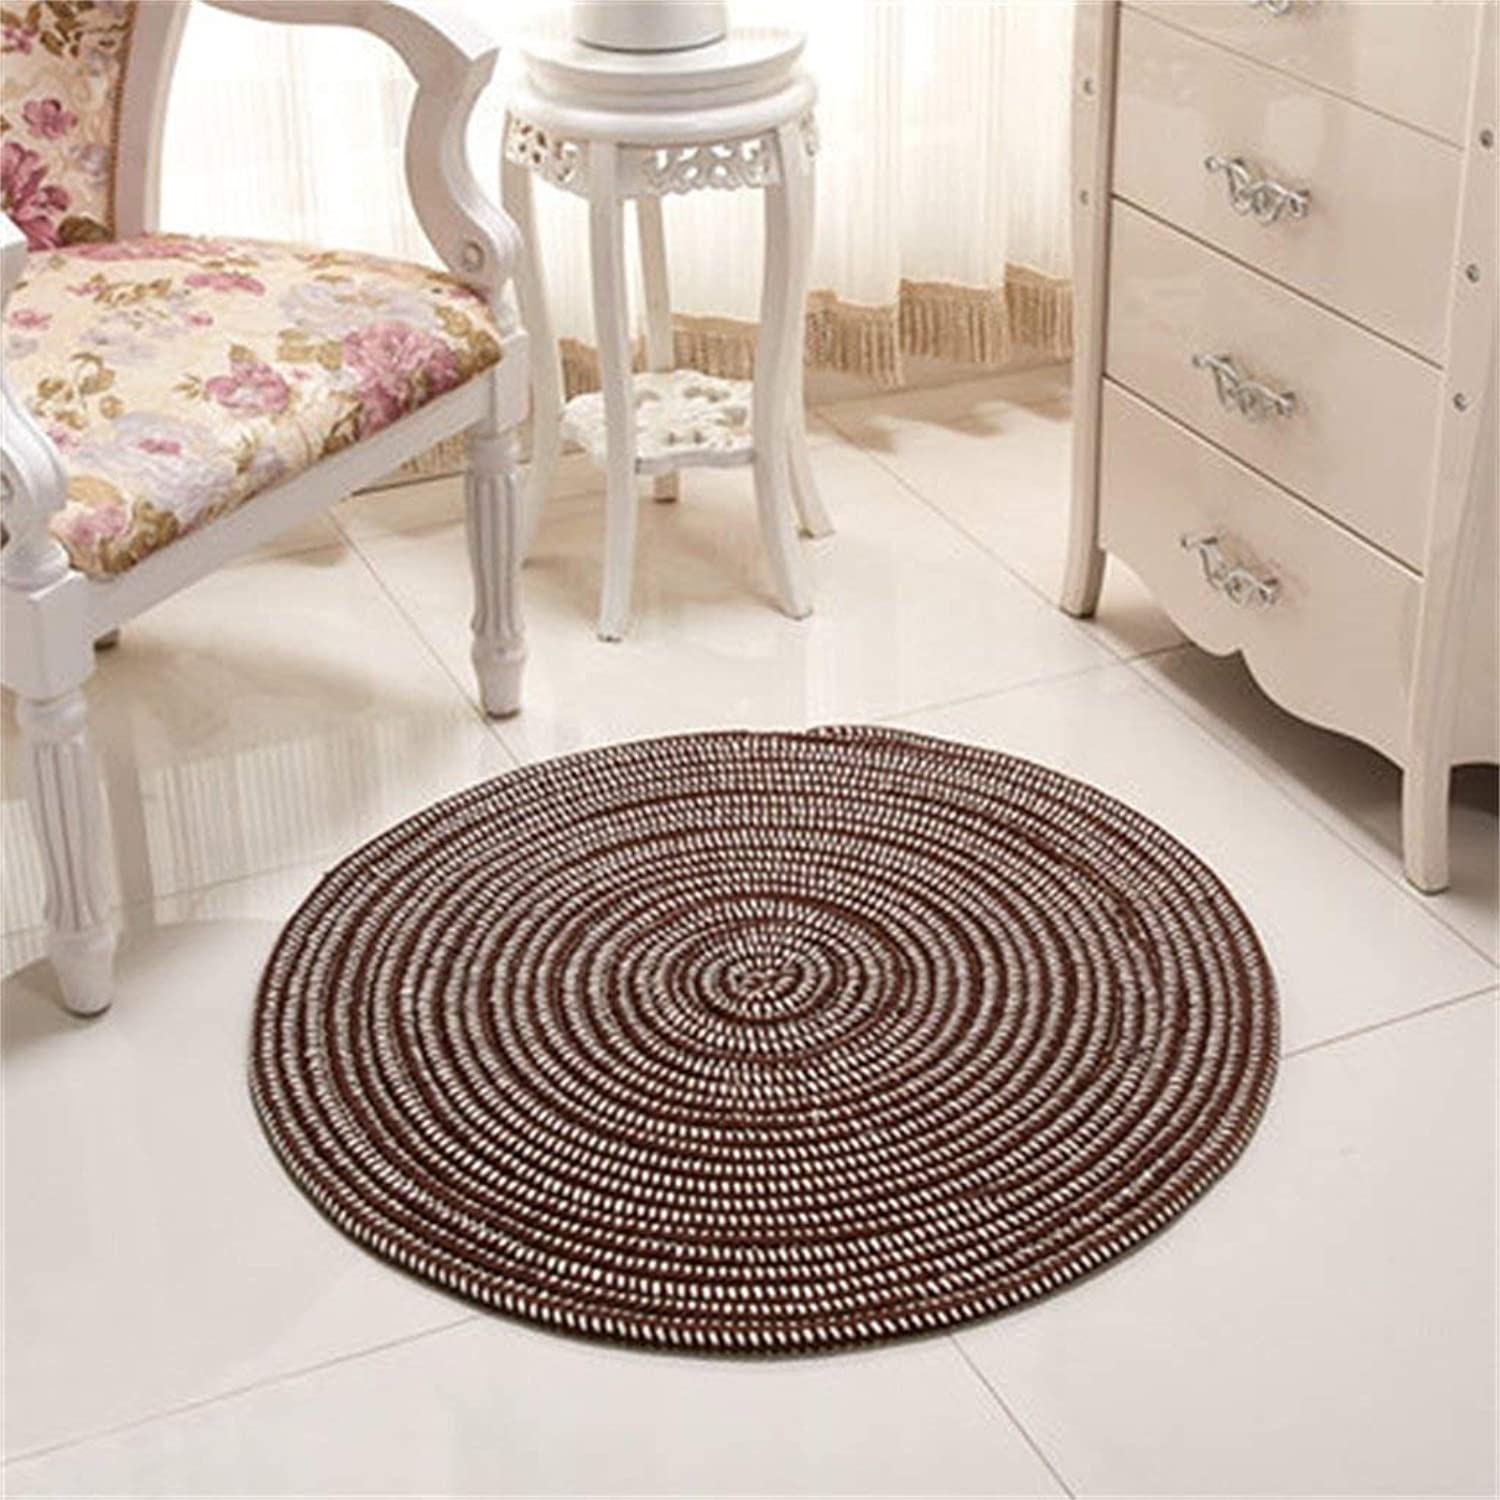 Round Carpet, Rope Series Woven Mat Computer Chairs Cushions Padded Living Room Bedroom Carpet Dust & Water Retaining Door Mat (color    2, Size   Diameter 100CM)